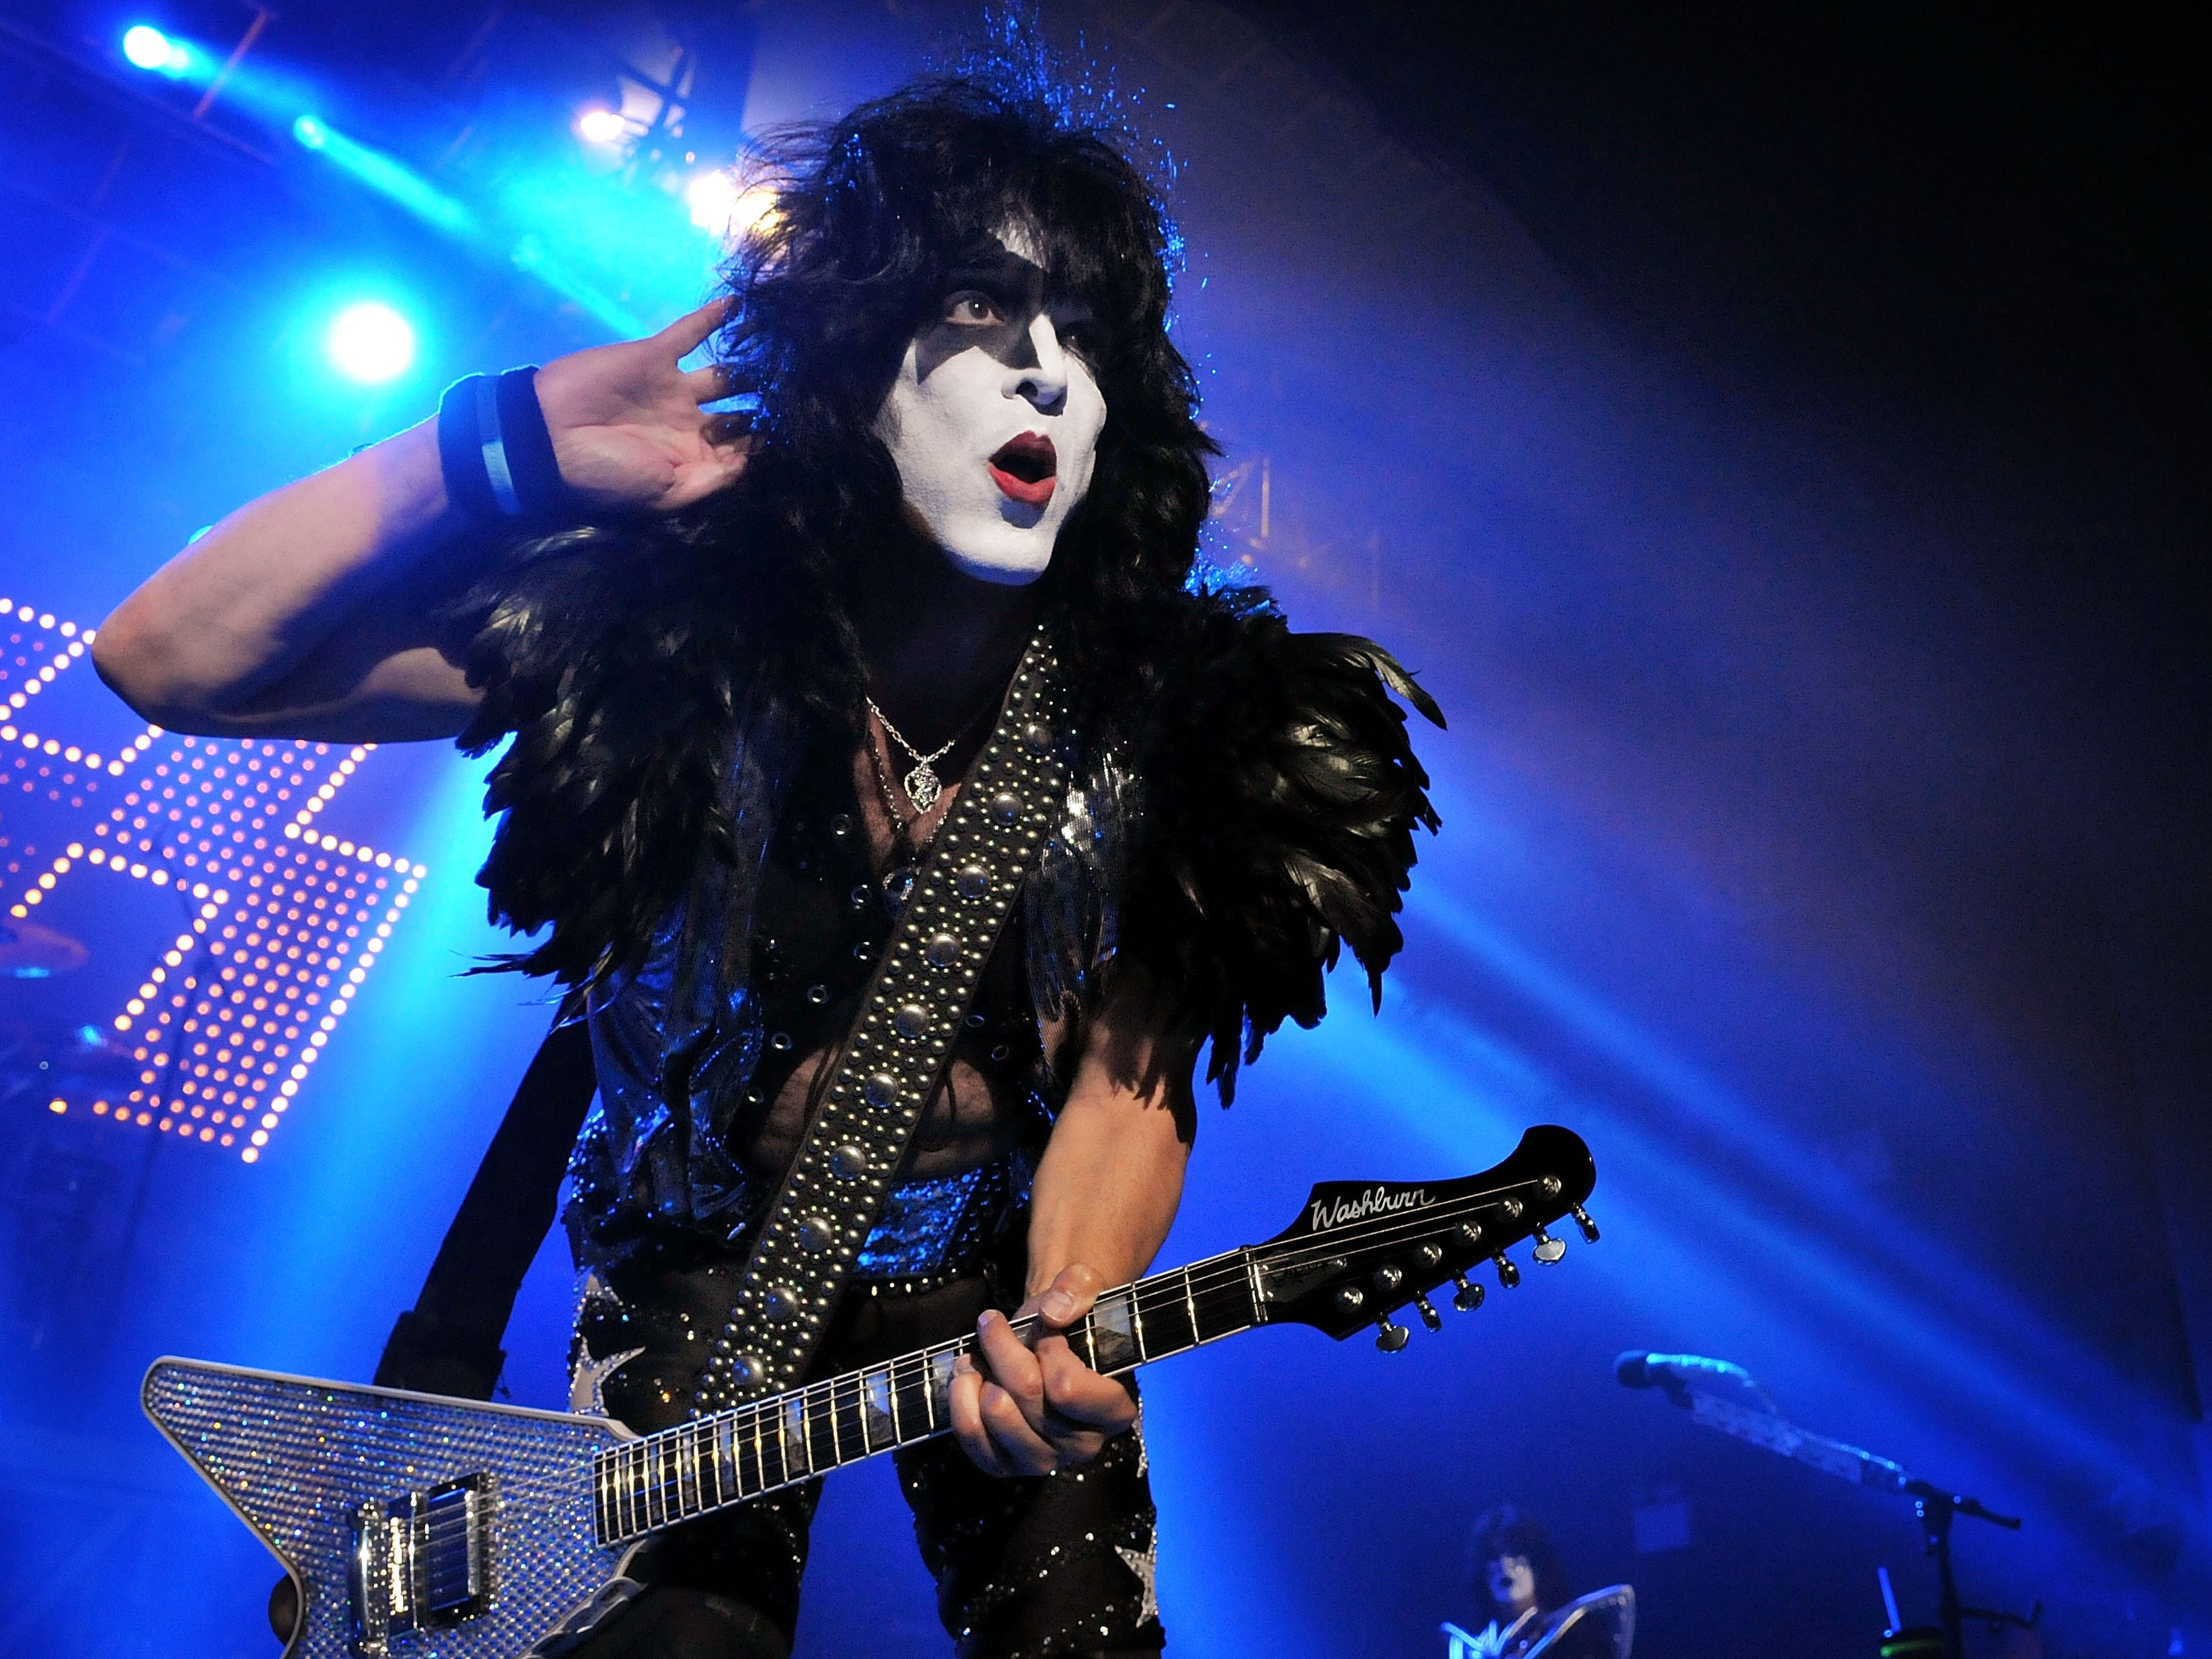 LONDON, ENGLAND - JULY 04:  Paul Stanley of US rock group Kiss performs live on stage, for a one-off Independence Day show as a fundraiser for the Help for Heroes charity, at The Kentish Town Forum on July 4, 2012 in London, England.  (Photo by Jim Dyson/Getty Images)